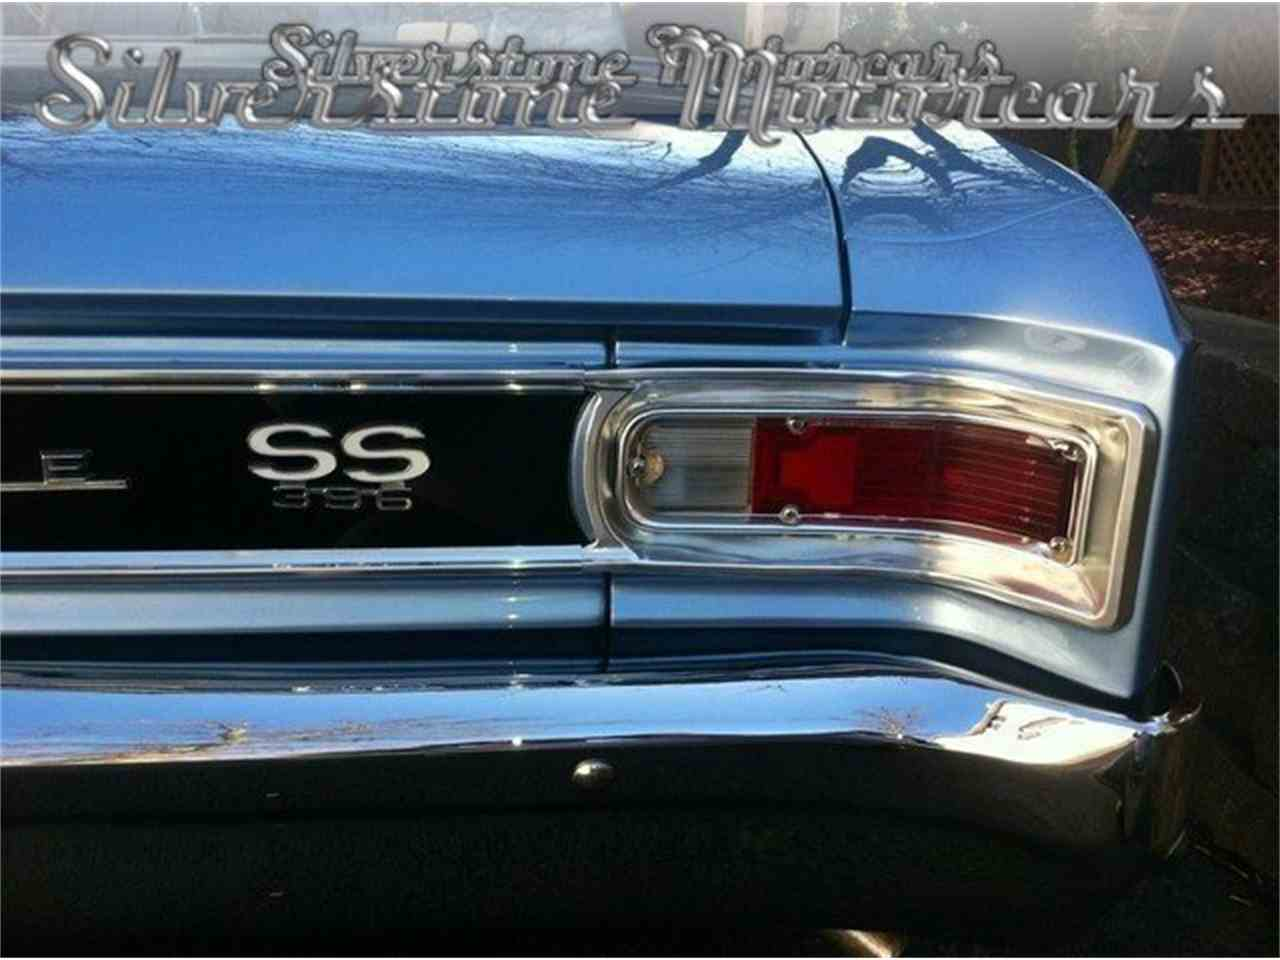 Large Picture of '66 Chevrolet Chevelle SS located in Massachusetts - $47,500.00 Offered by Silverstone Motorcars - LRTM